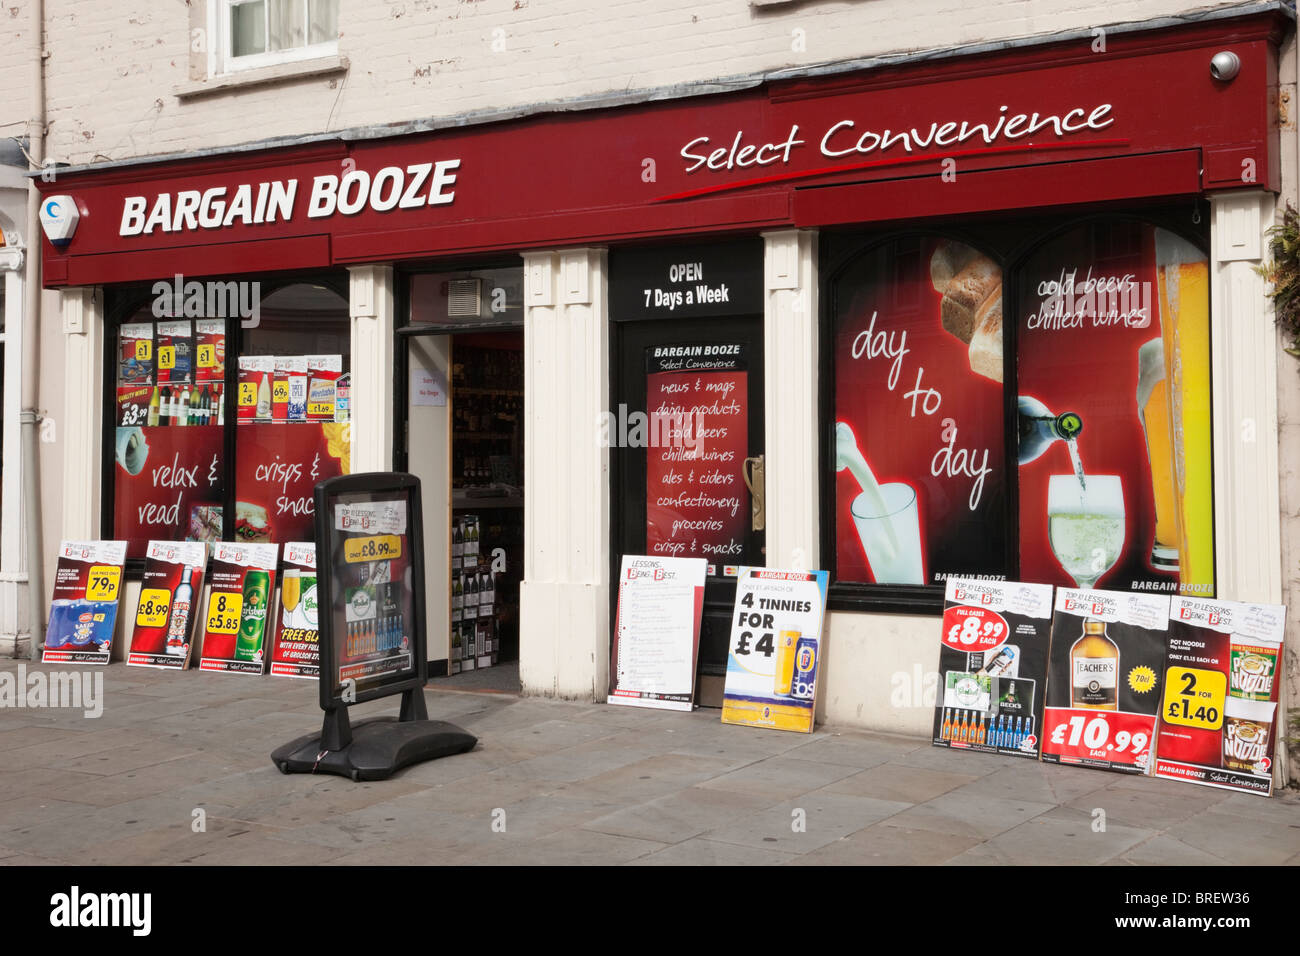 Bargain Booze shop front window with adverts for cheap alcohol. Wales, UK, Britain - Stock Image